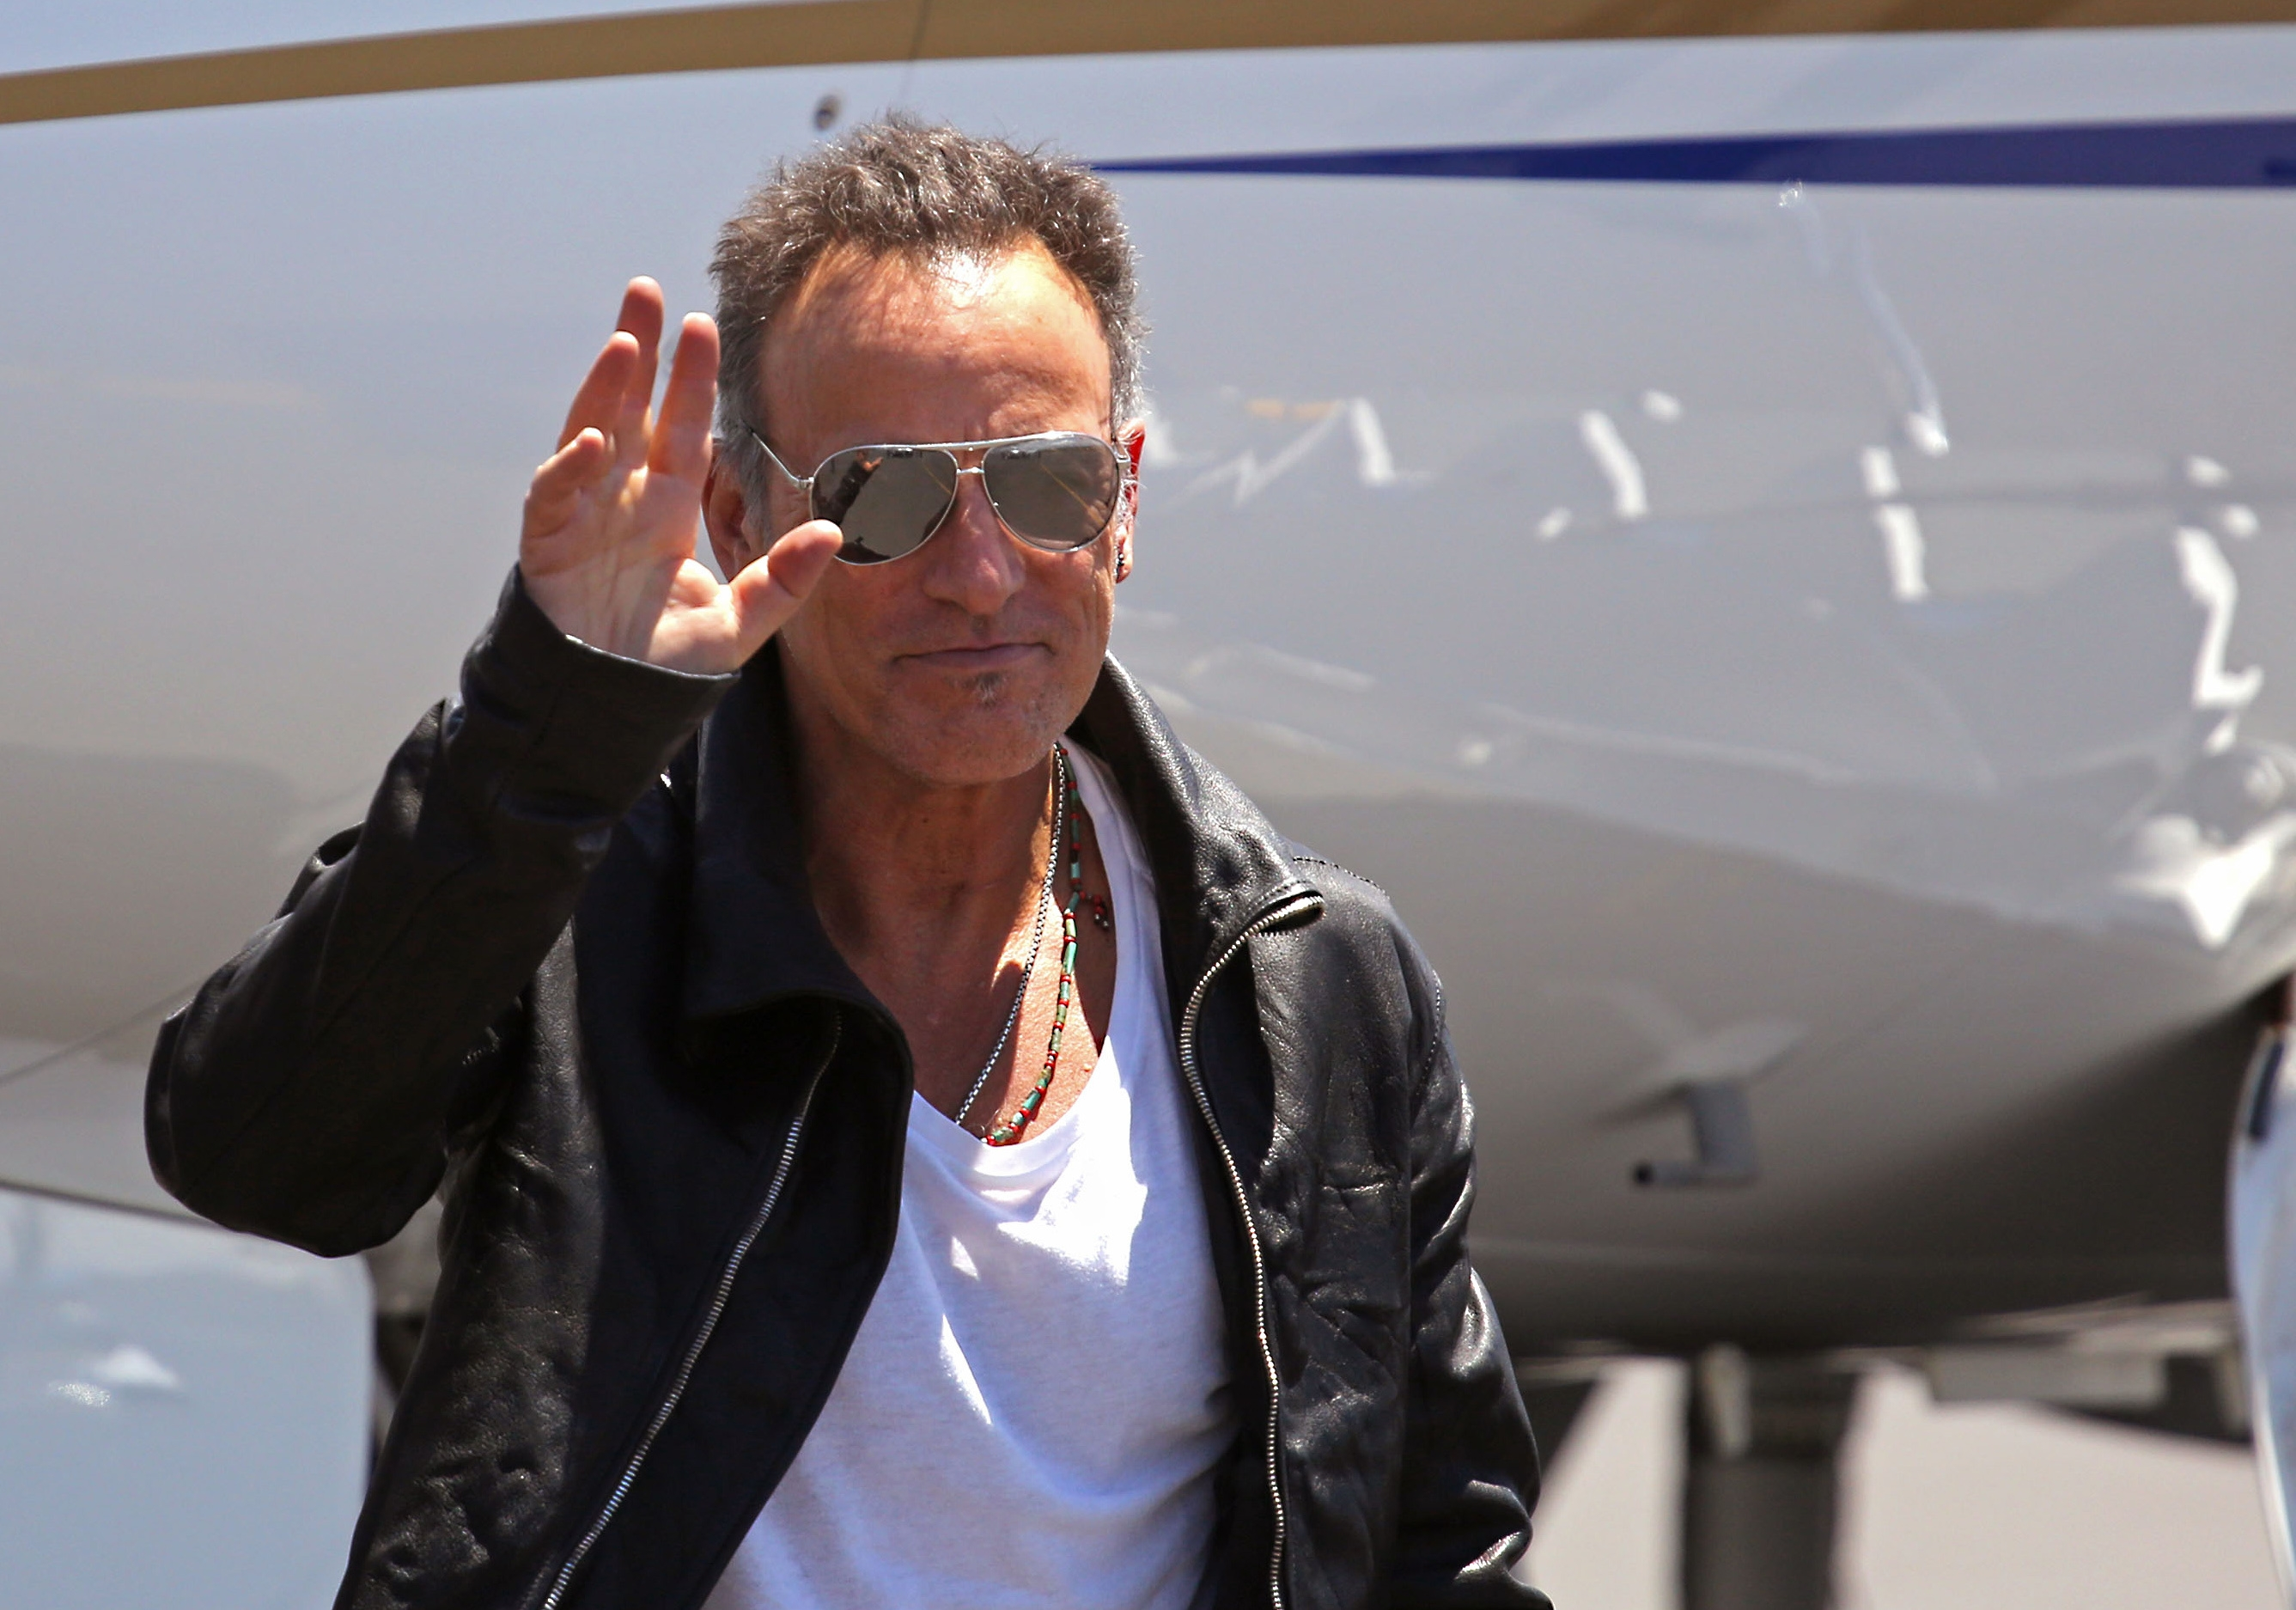 Bruce Springsteen waves as he arrives in Cape Town, South Africa, on Friday. His E Street Band plans four concerts in Cape Town and Johannesburg.